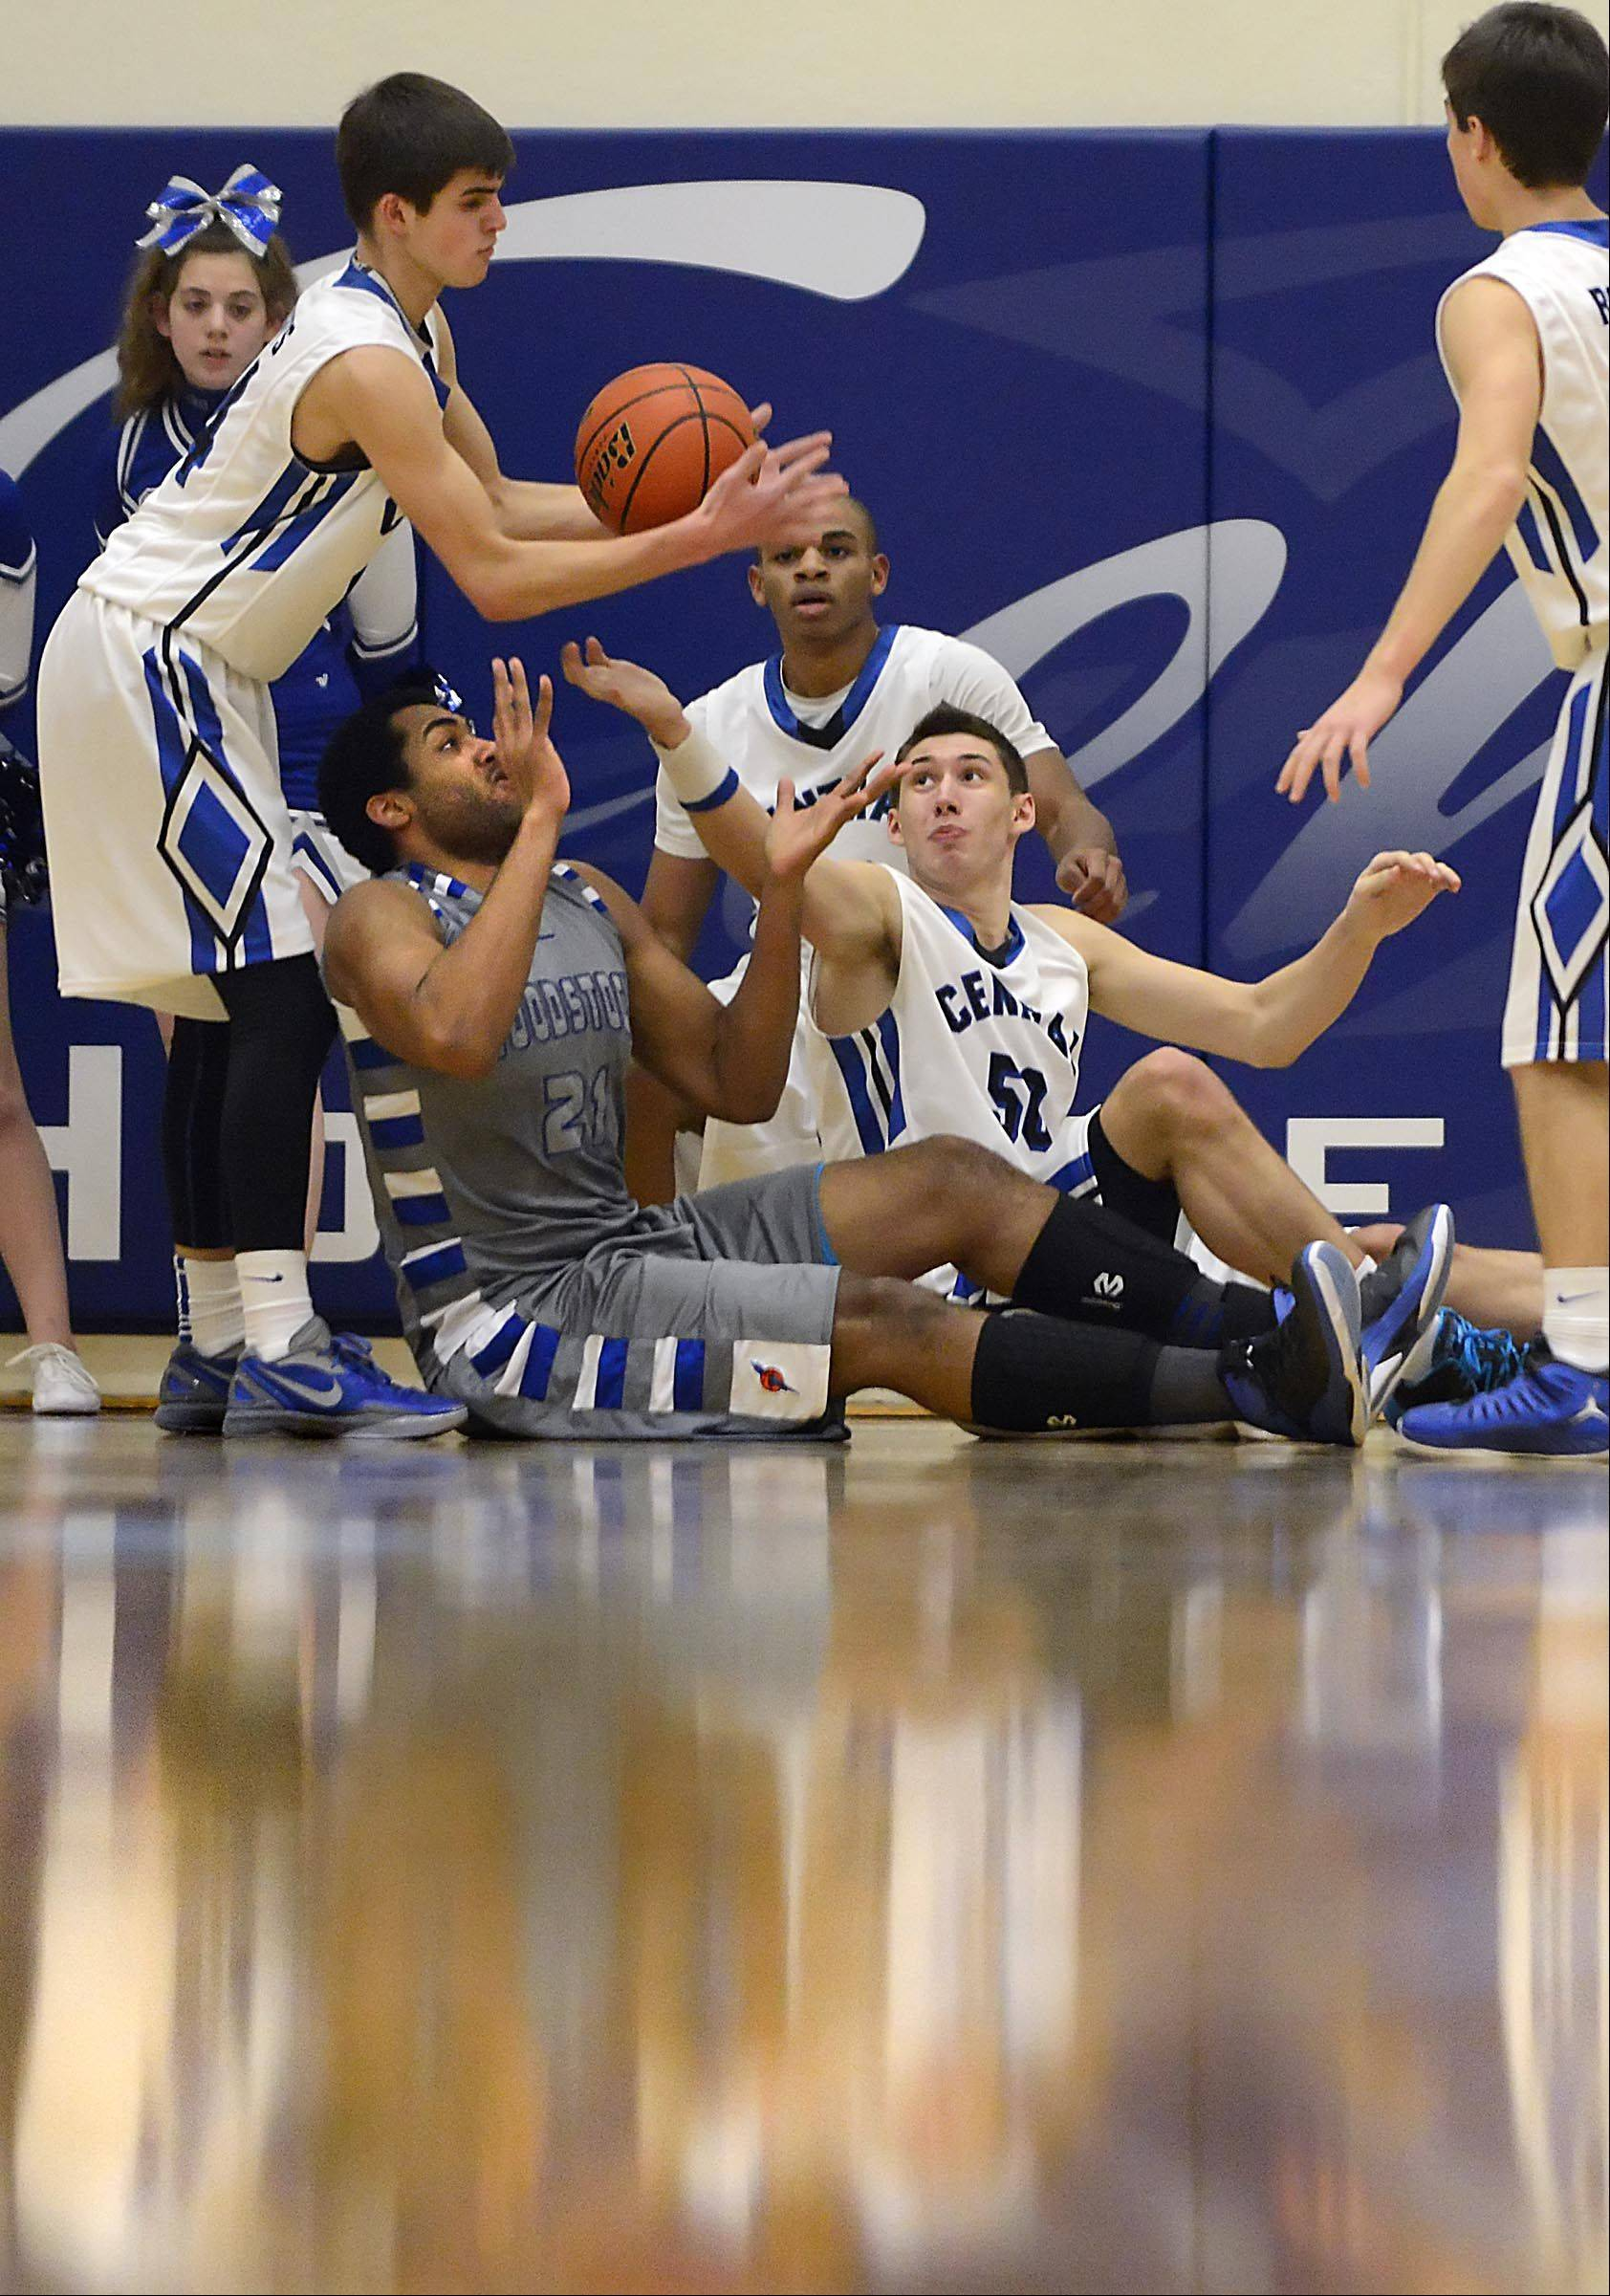 Burlington Central's Brett Rau grabs the loose ball as teammate Duncan Ozburn and Woodstock's Damian Stoneking reach from the floor Wednesday in Burlington.